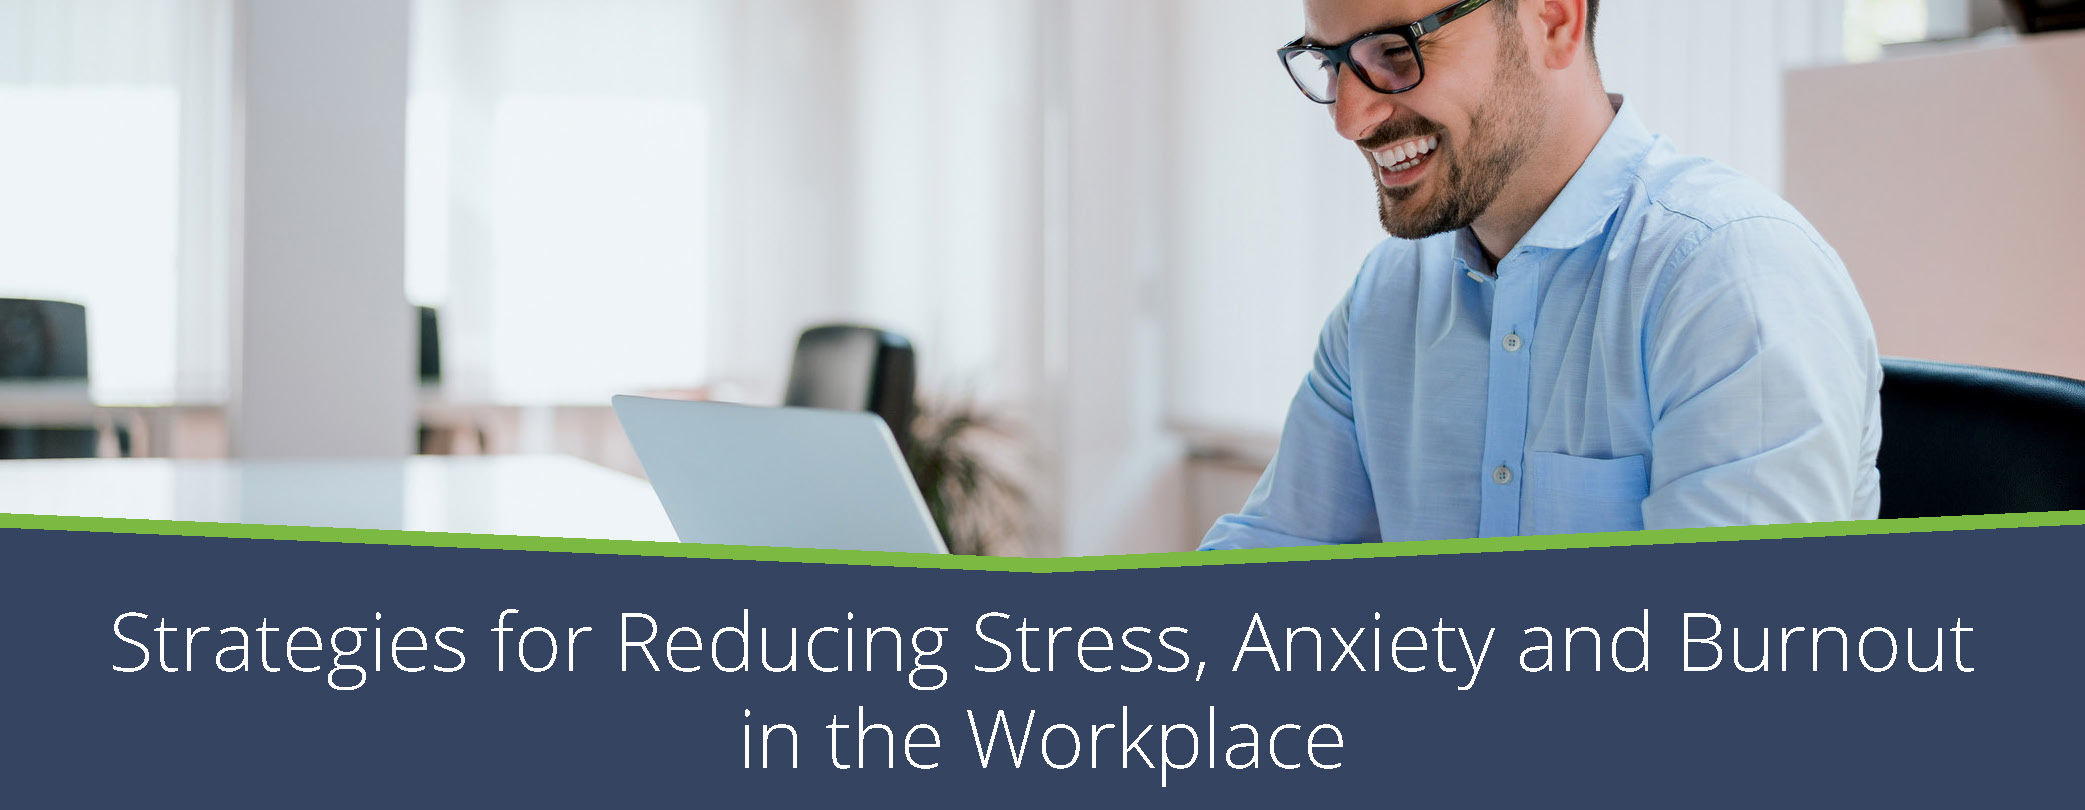 Reducing stress, anxiety and burnout in the workplace